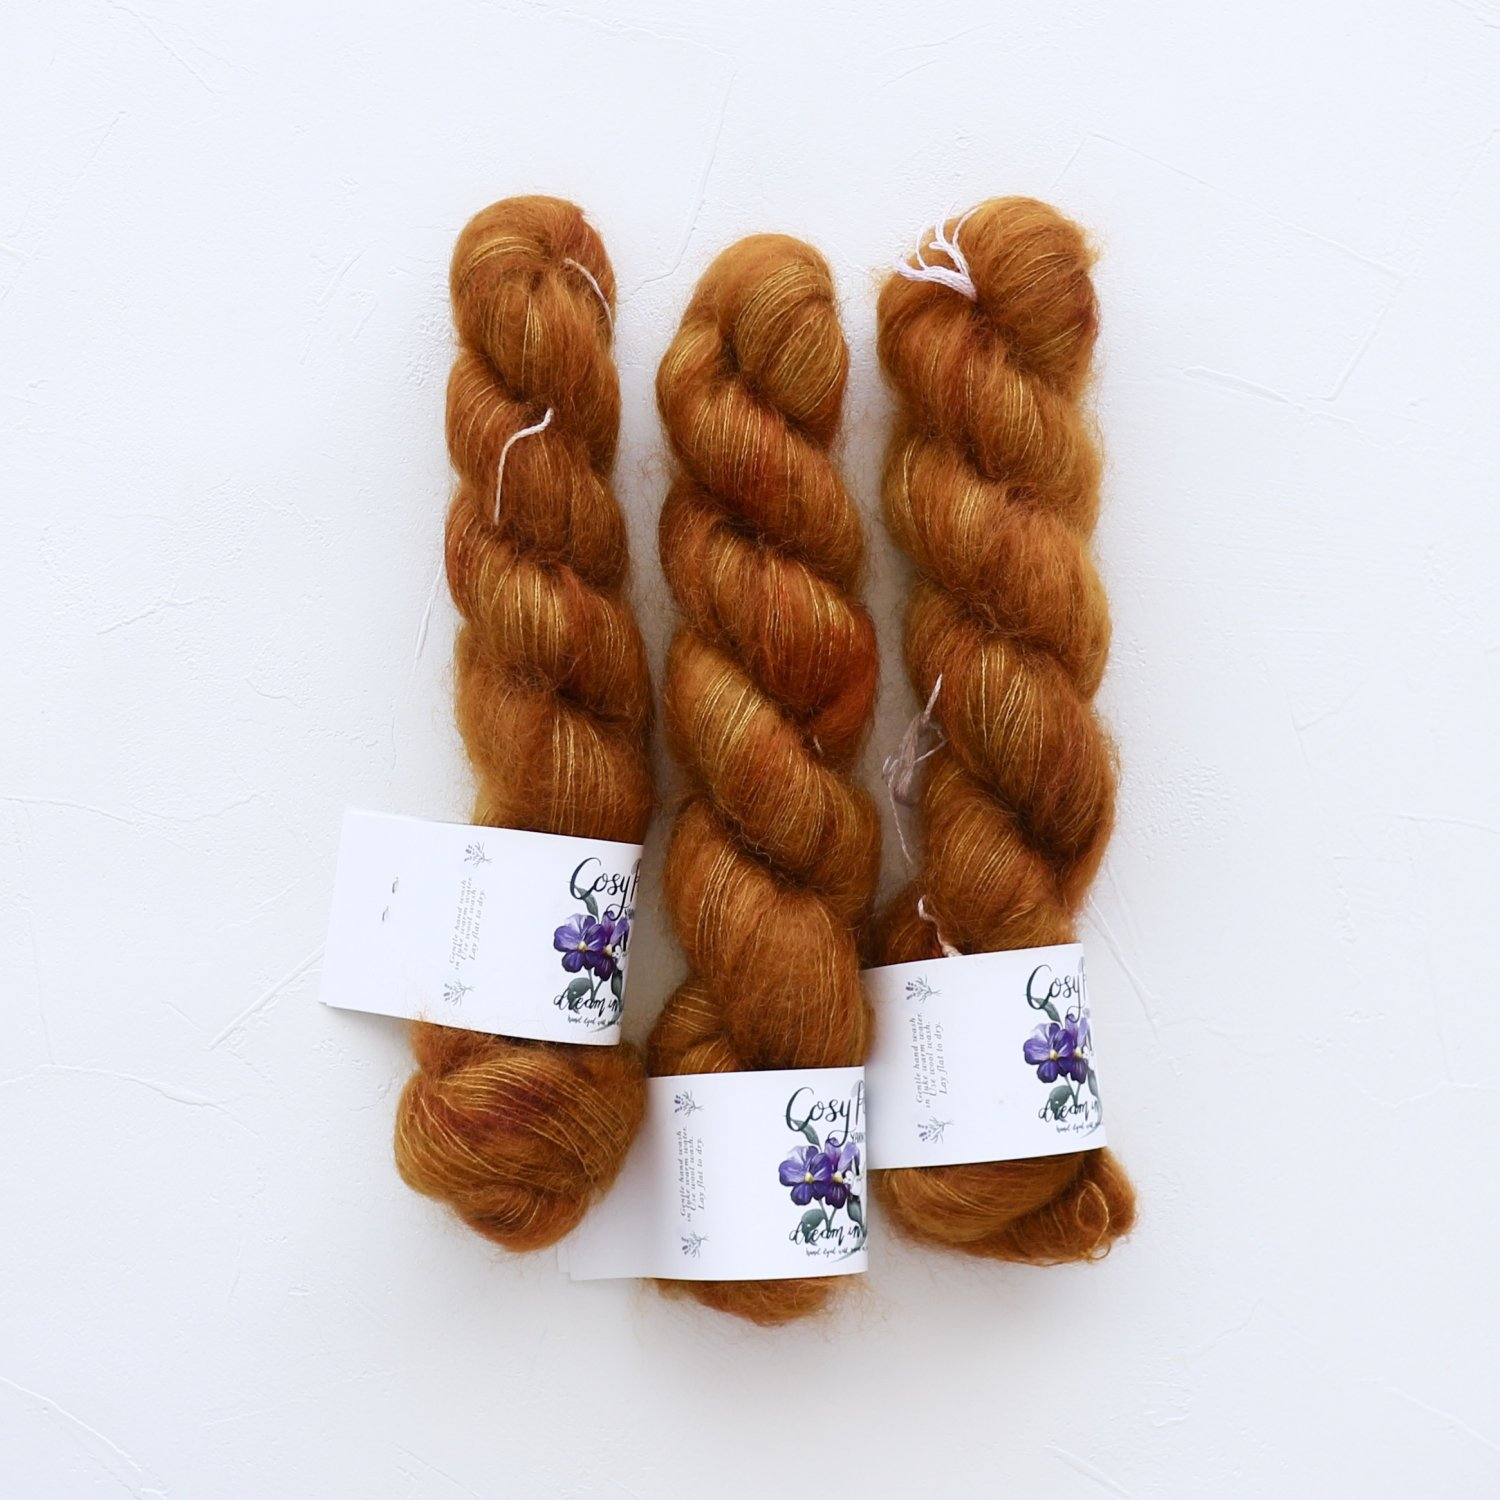 【Cosy Posy Yarn】<br>FLOOF<br>Hazel